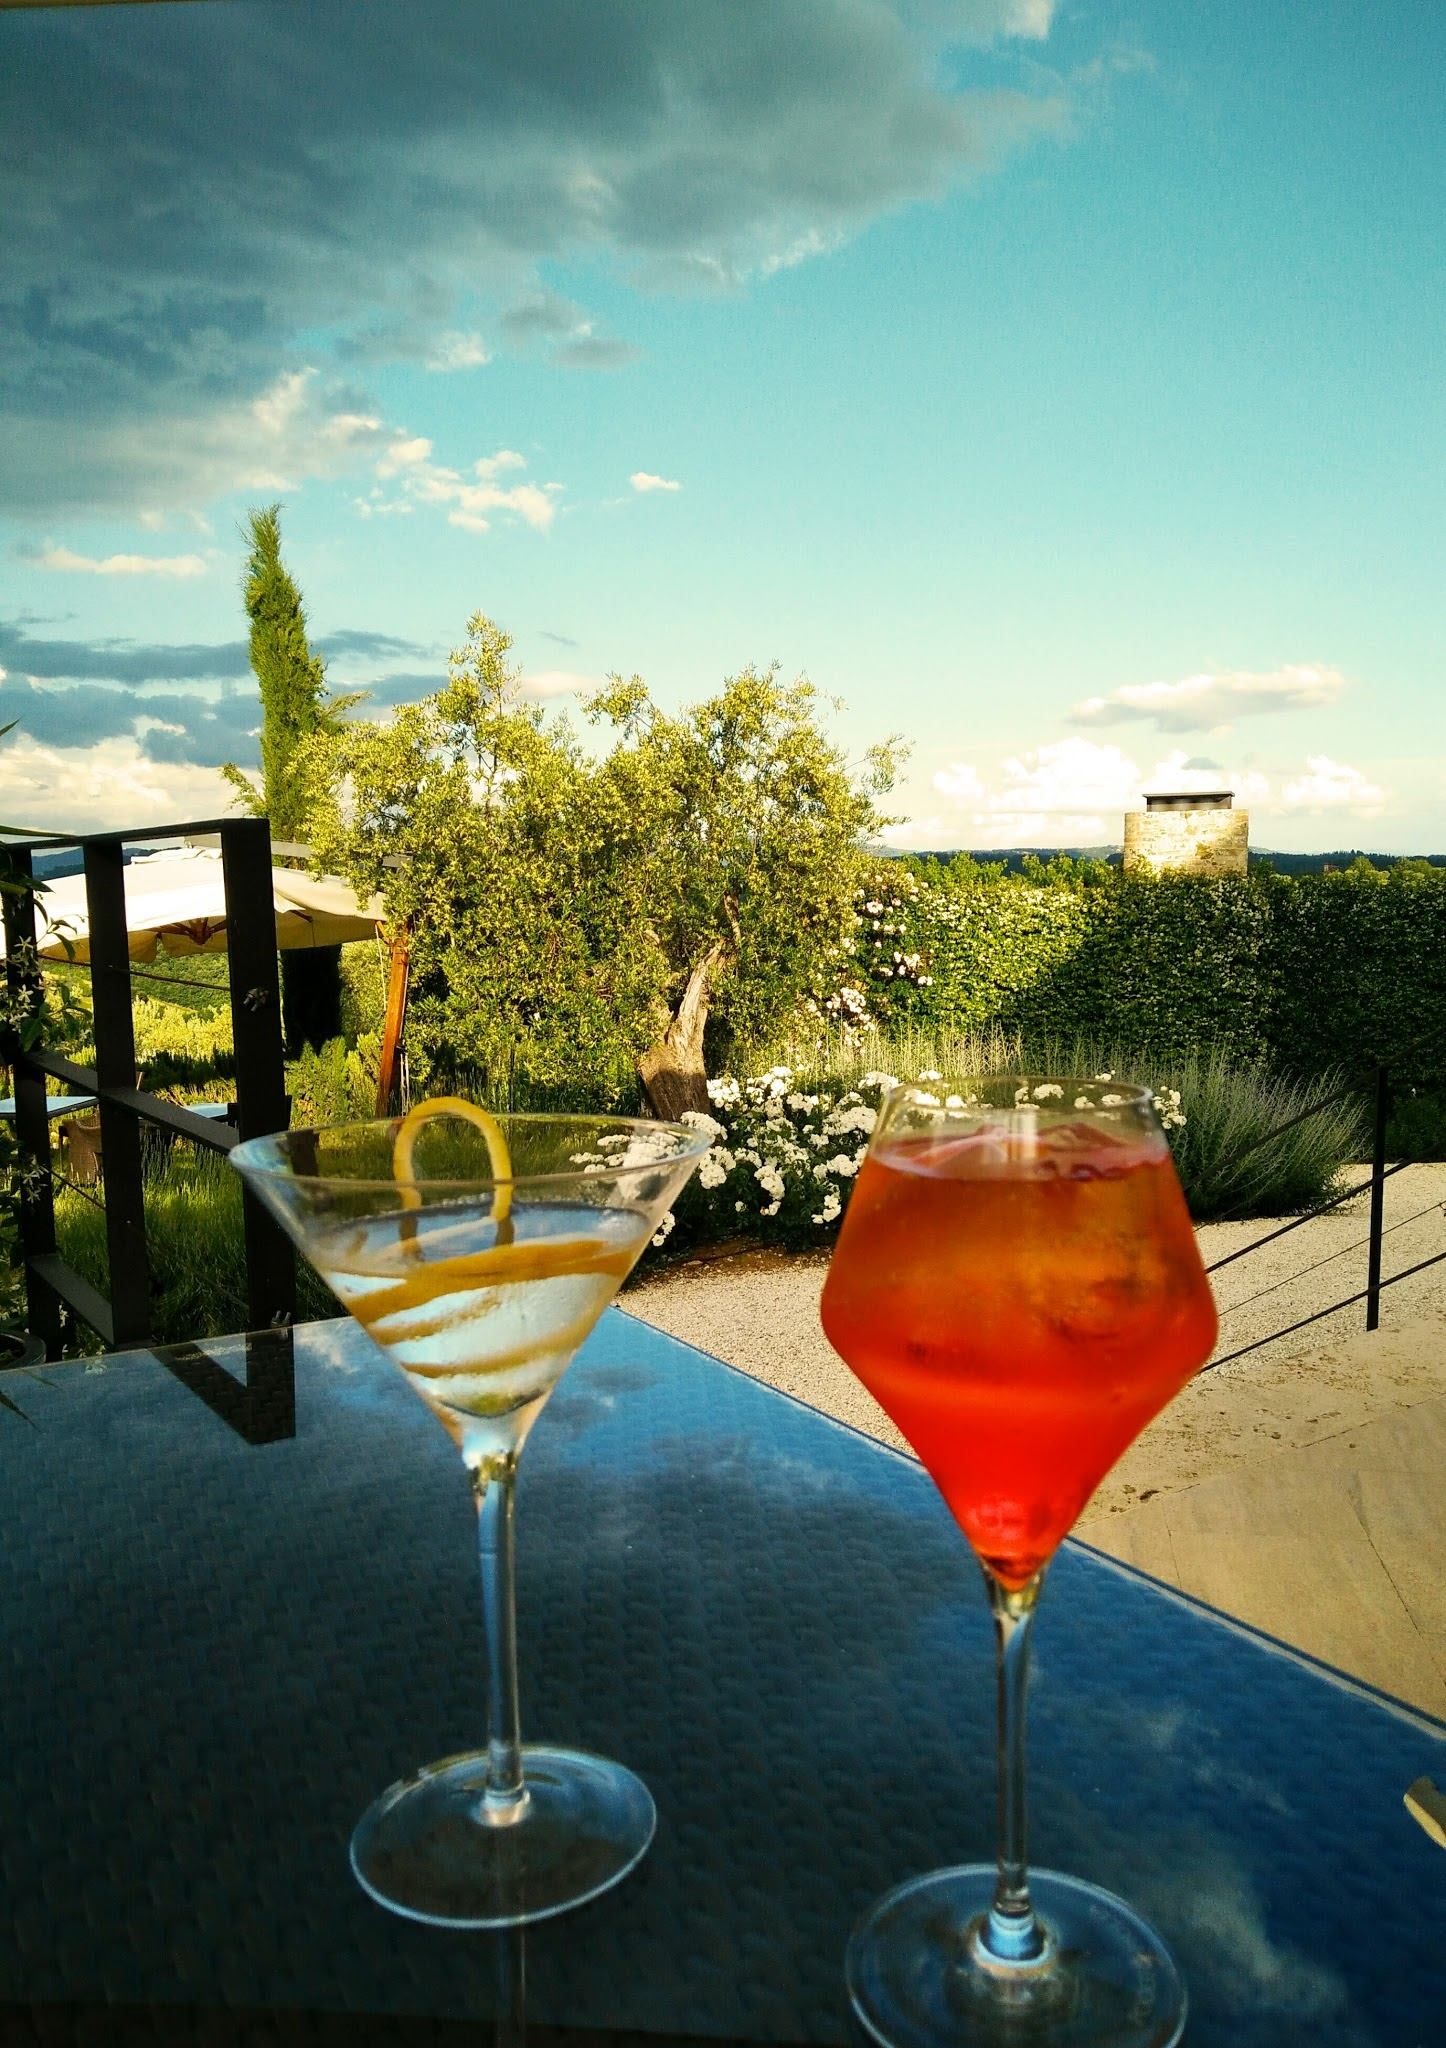 Aperitivo on the terrace, Poggio Piglia